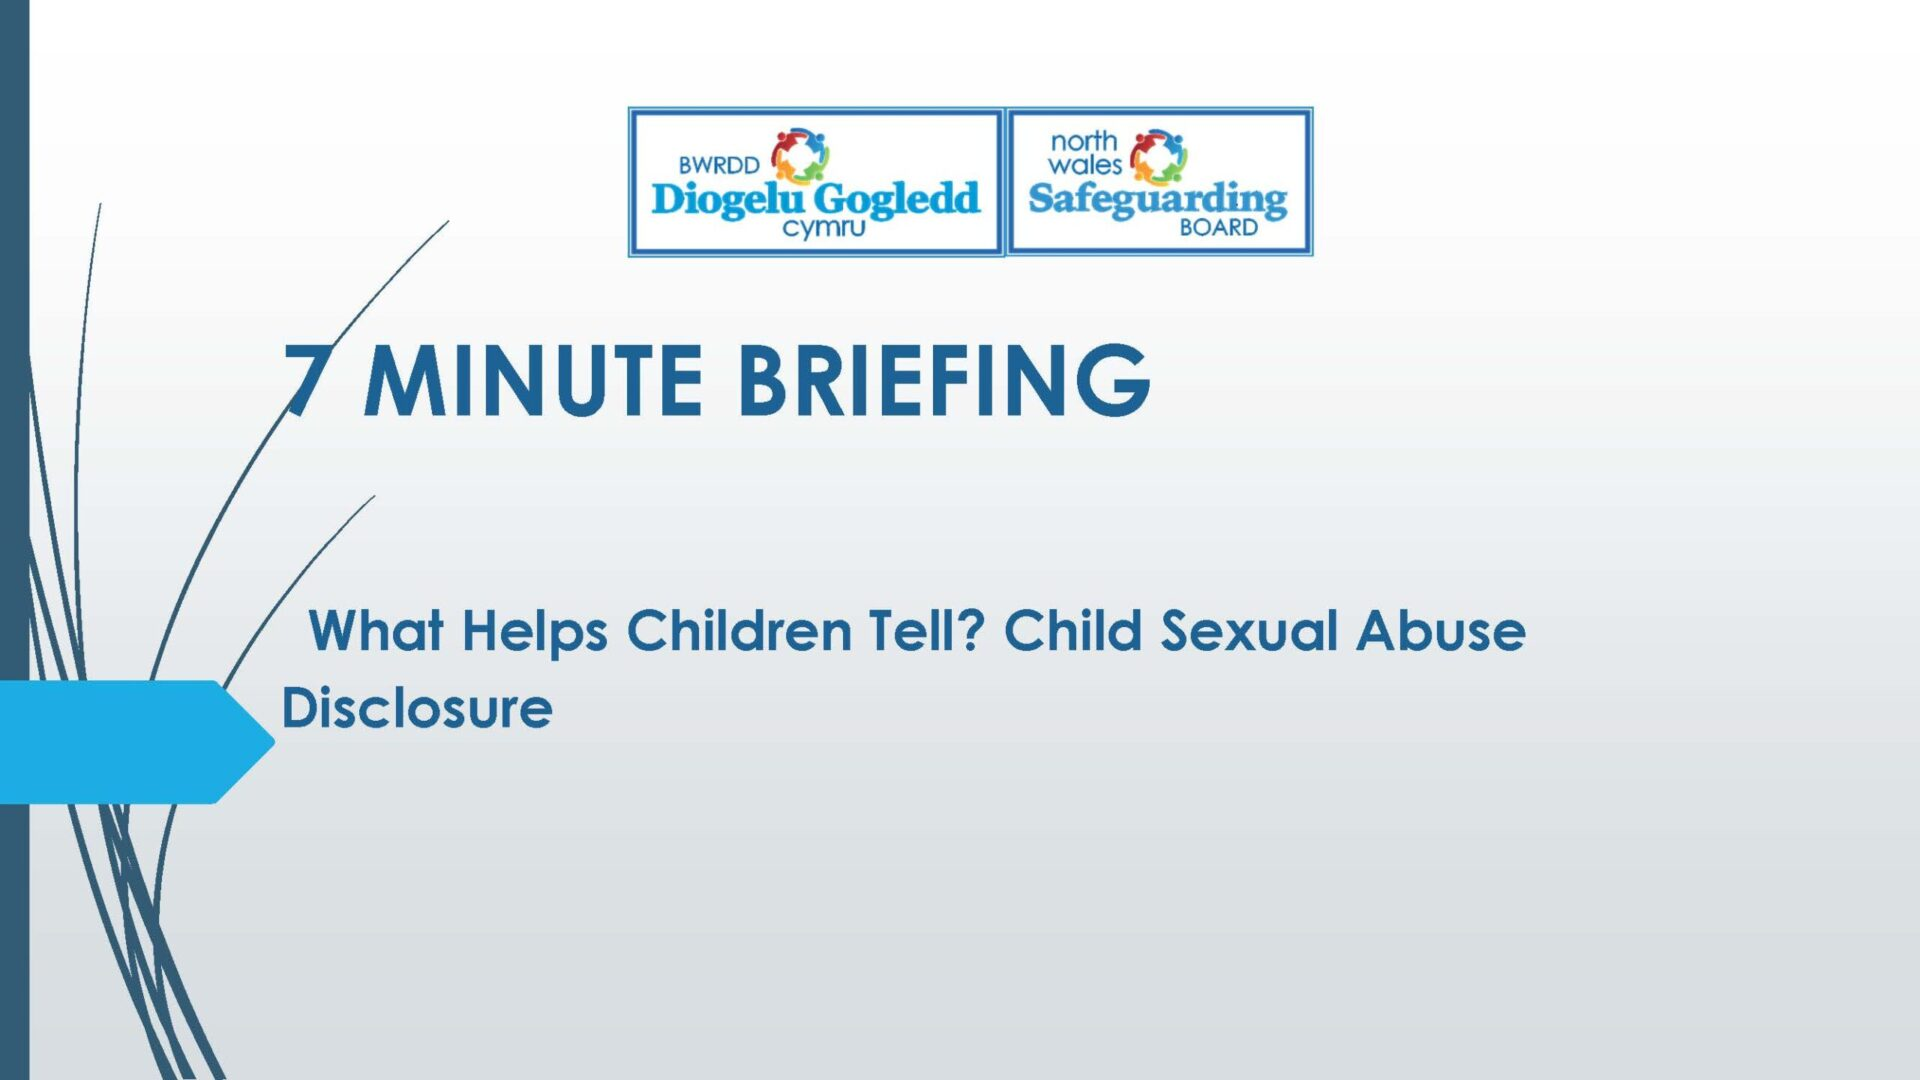 What Helps Children Tell-Child Sexual Abuse Disclosure